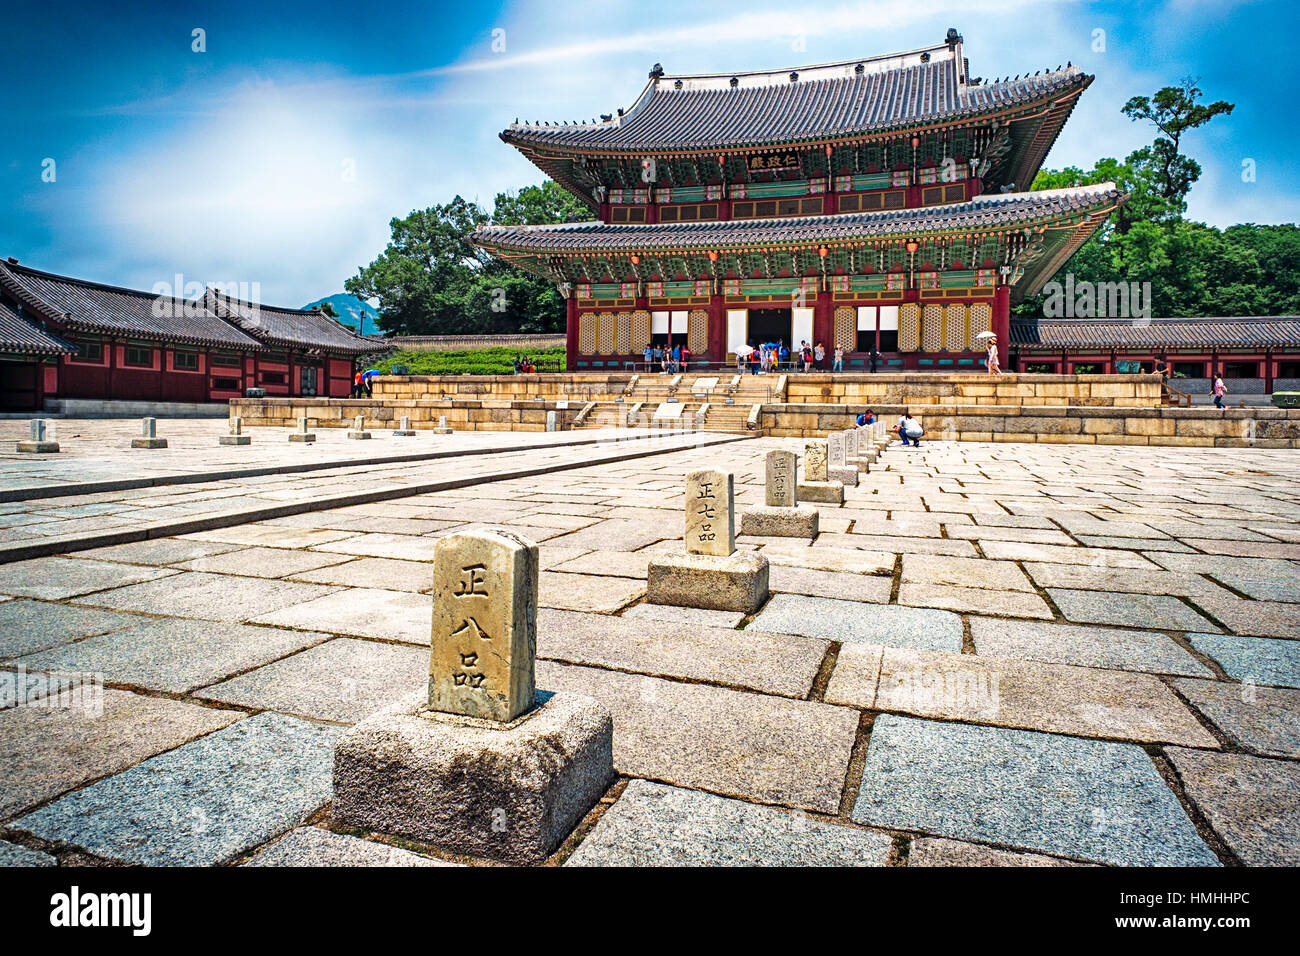 Throne Hall Building in Gyeongbokgung Palace, Seoul, South Korea - Stock Image